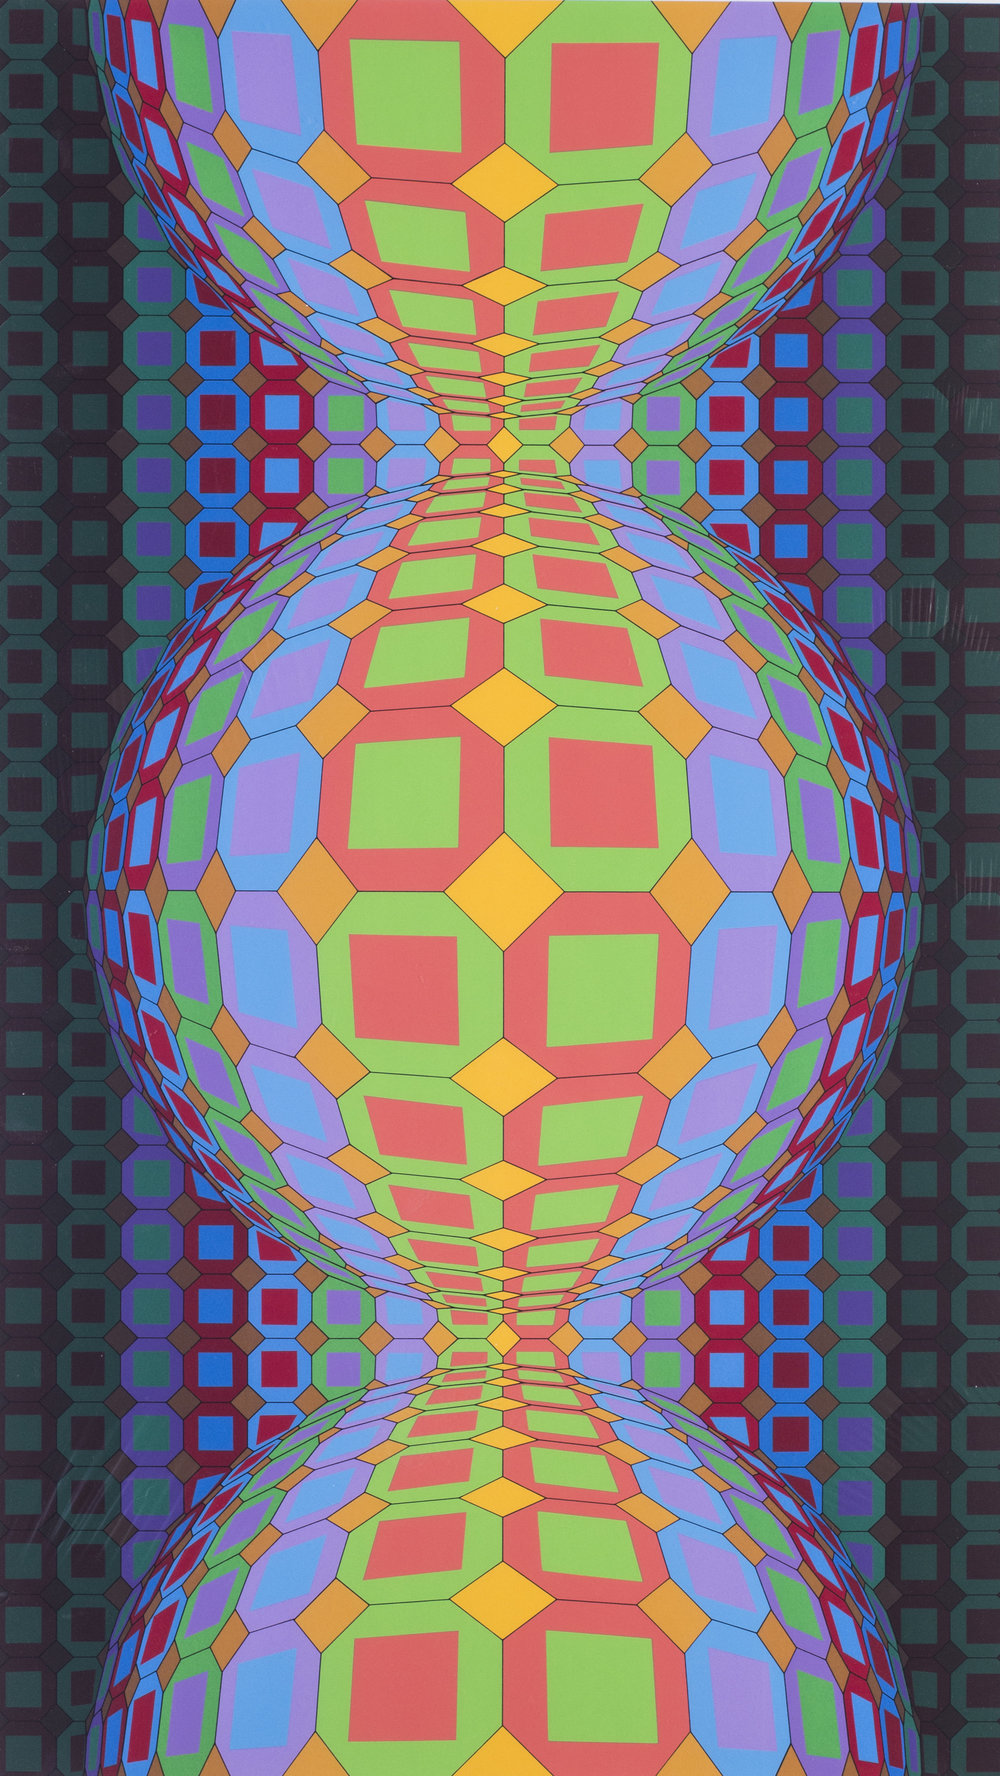 Victor Vasarely    Kaaba II, 1988    Numbered 'F. V. 26 / 60' (lower left) and signed 'Vasarely' (lower right in pencil)   Screen print   40.1/4 x 25.1/4 in. (102.5 x 64 cm.) including margin   Price: £1,200